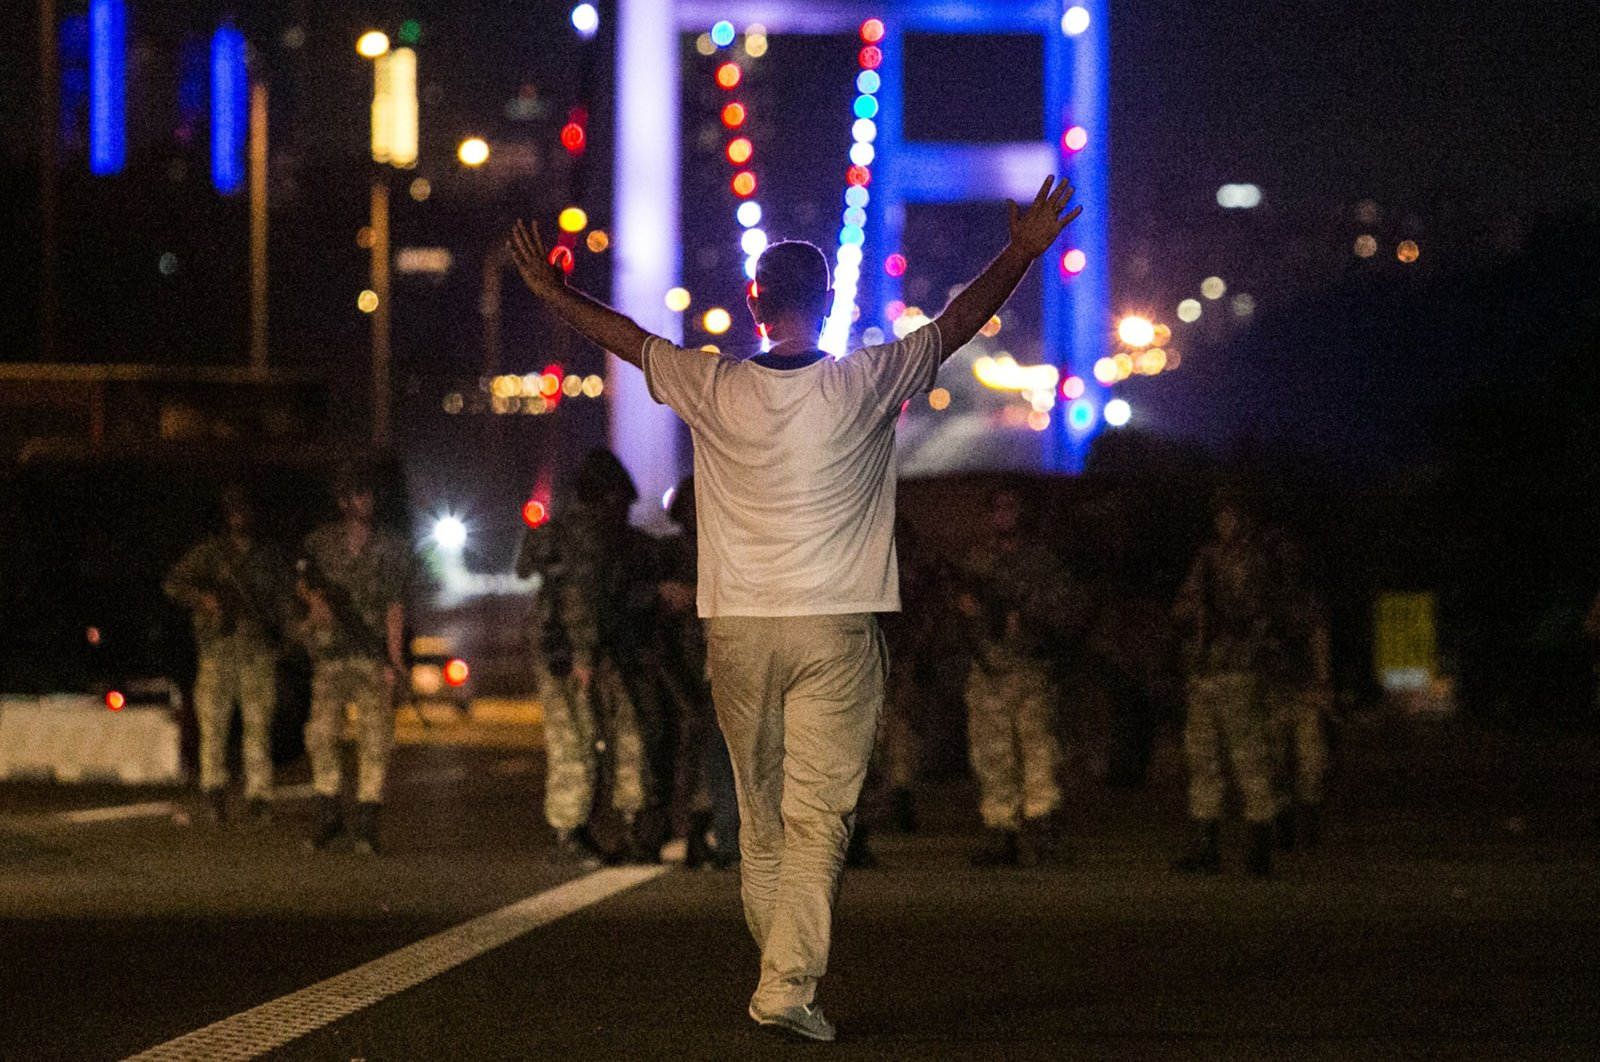 A man resists FETÖ-linked soldiers with his hands up at the entrance to the Bosphorus Bridge during the night of coup attempt, Istanbul, Turkey, July 16, 2016. (AFP Photo)